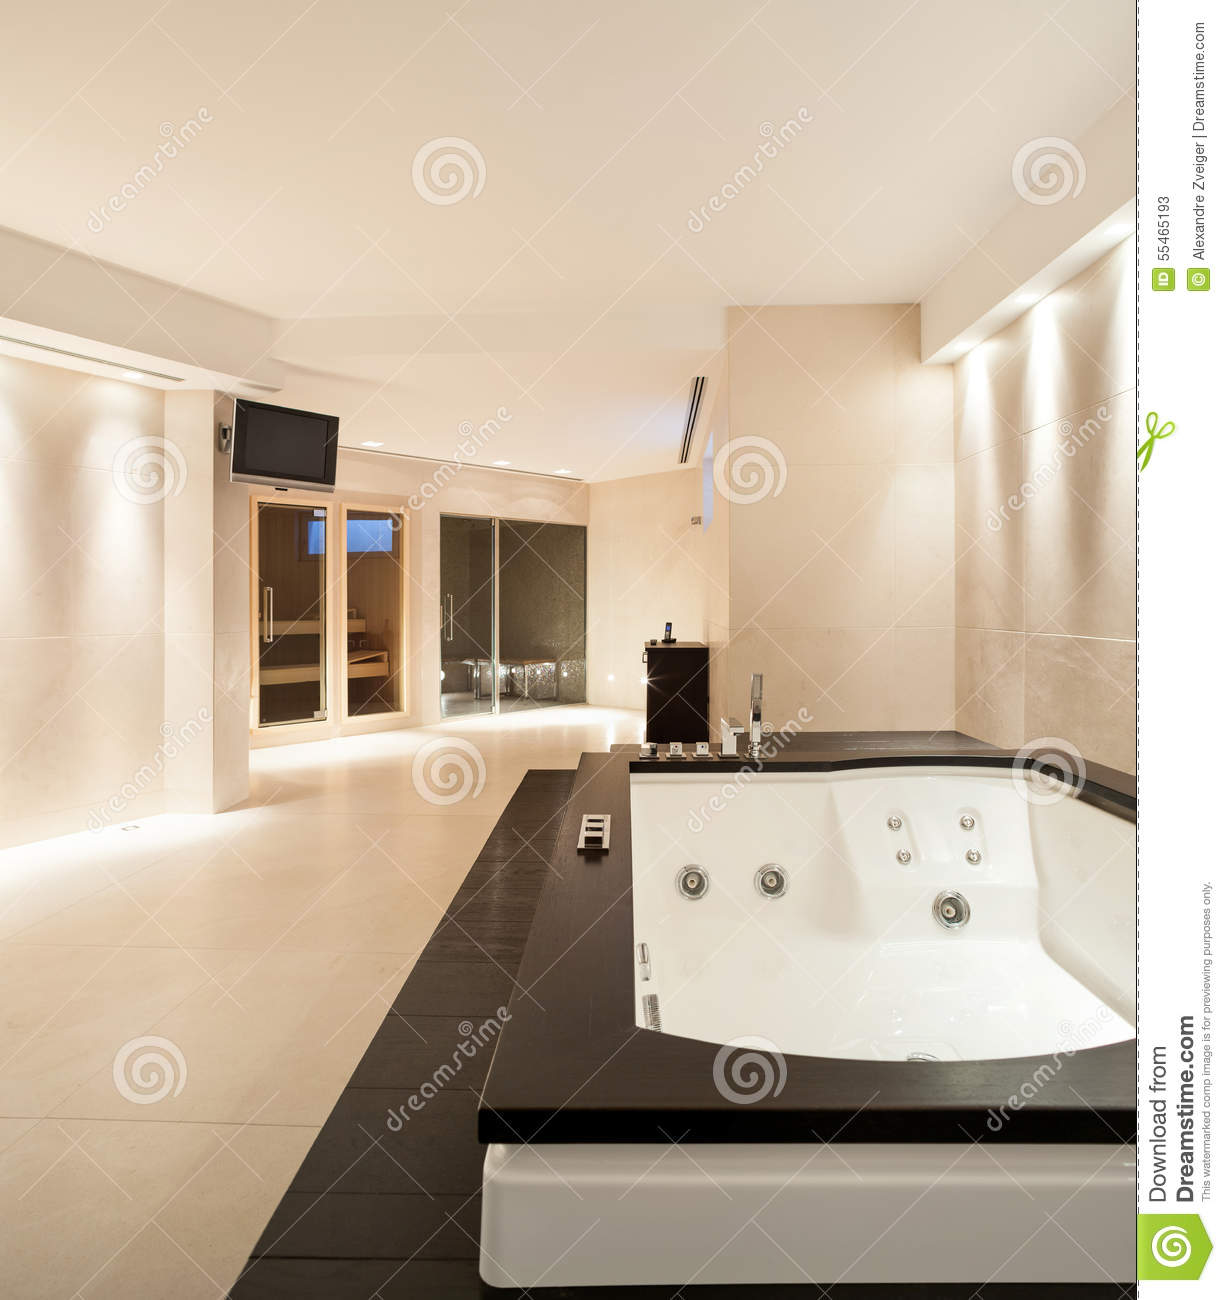 Beautiful Ehemaligen Thermalbadern Modernen Jacuzzi Gallery ...